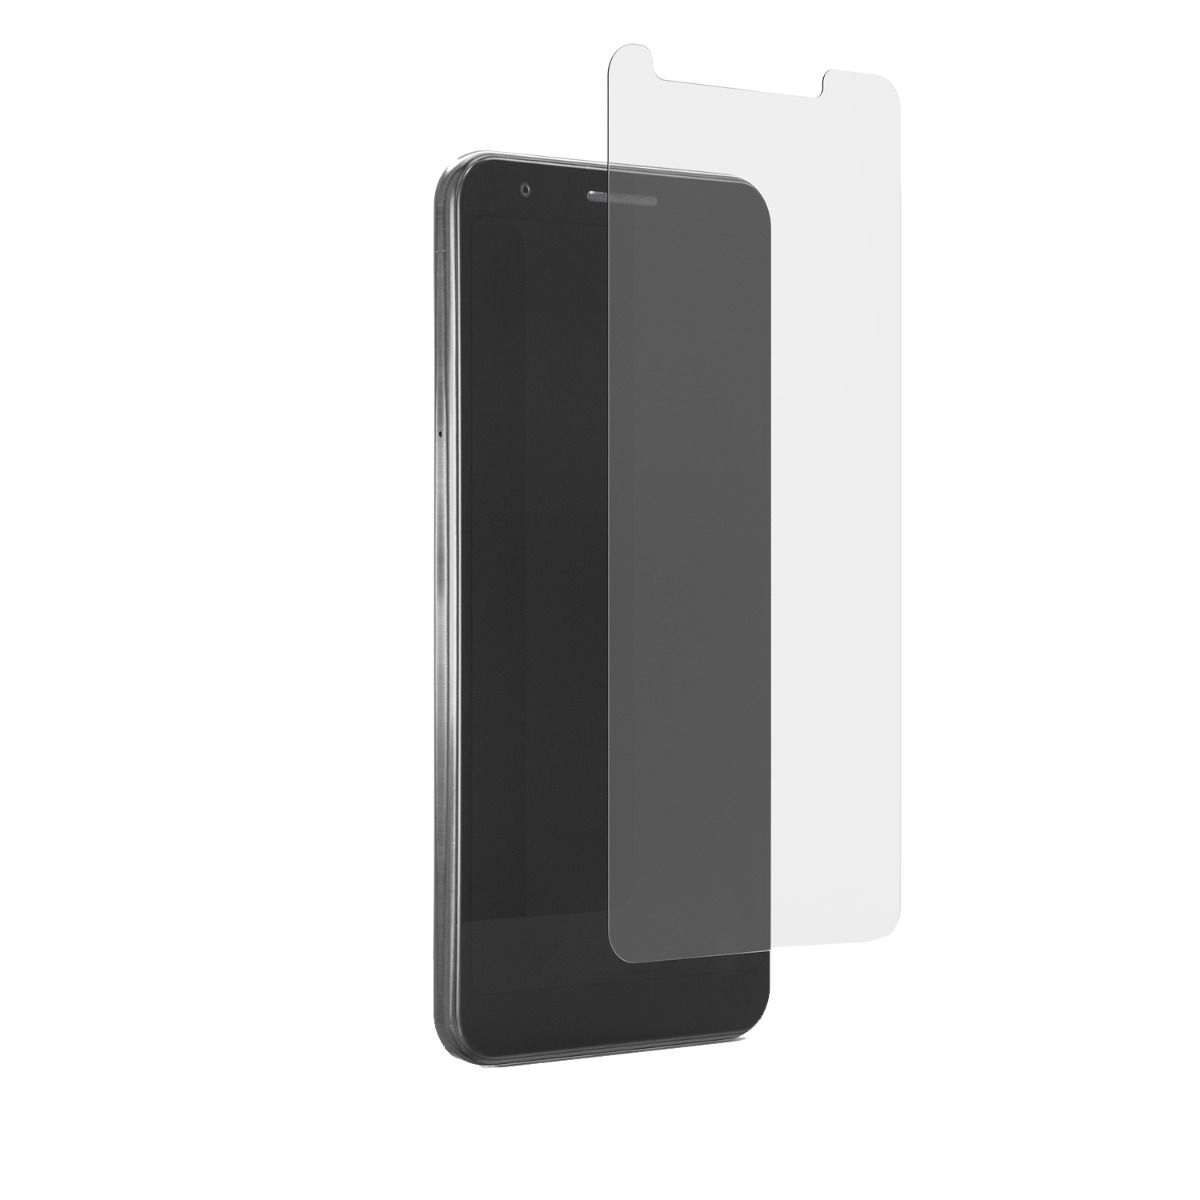 Samsung Galaxy J3 2017 High-Definition Glass Screen Protector (No Alignment Tray)